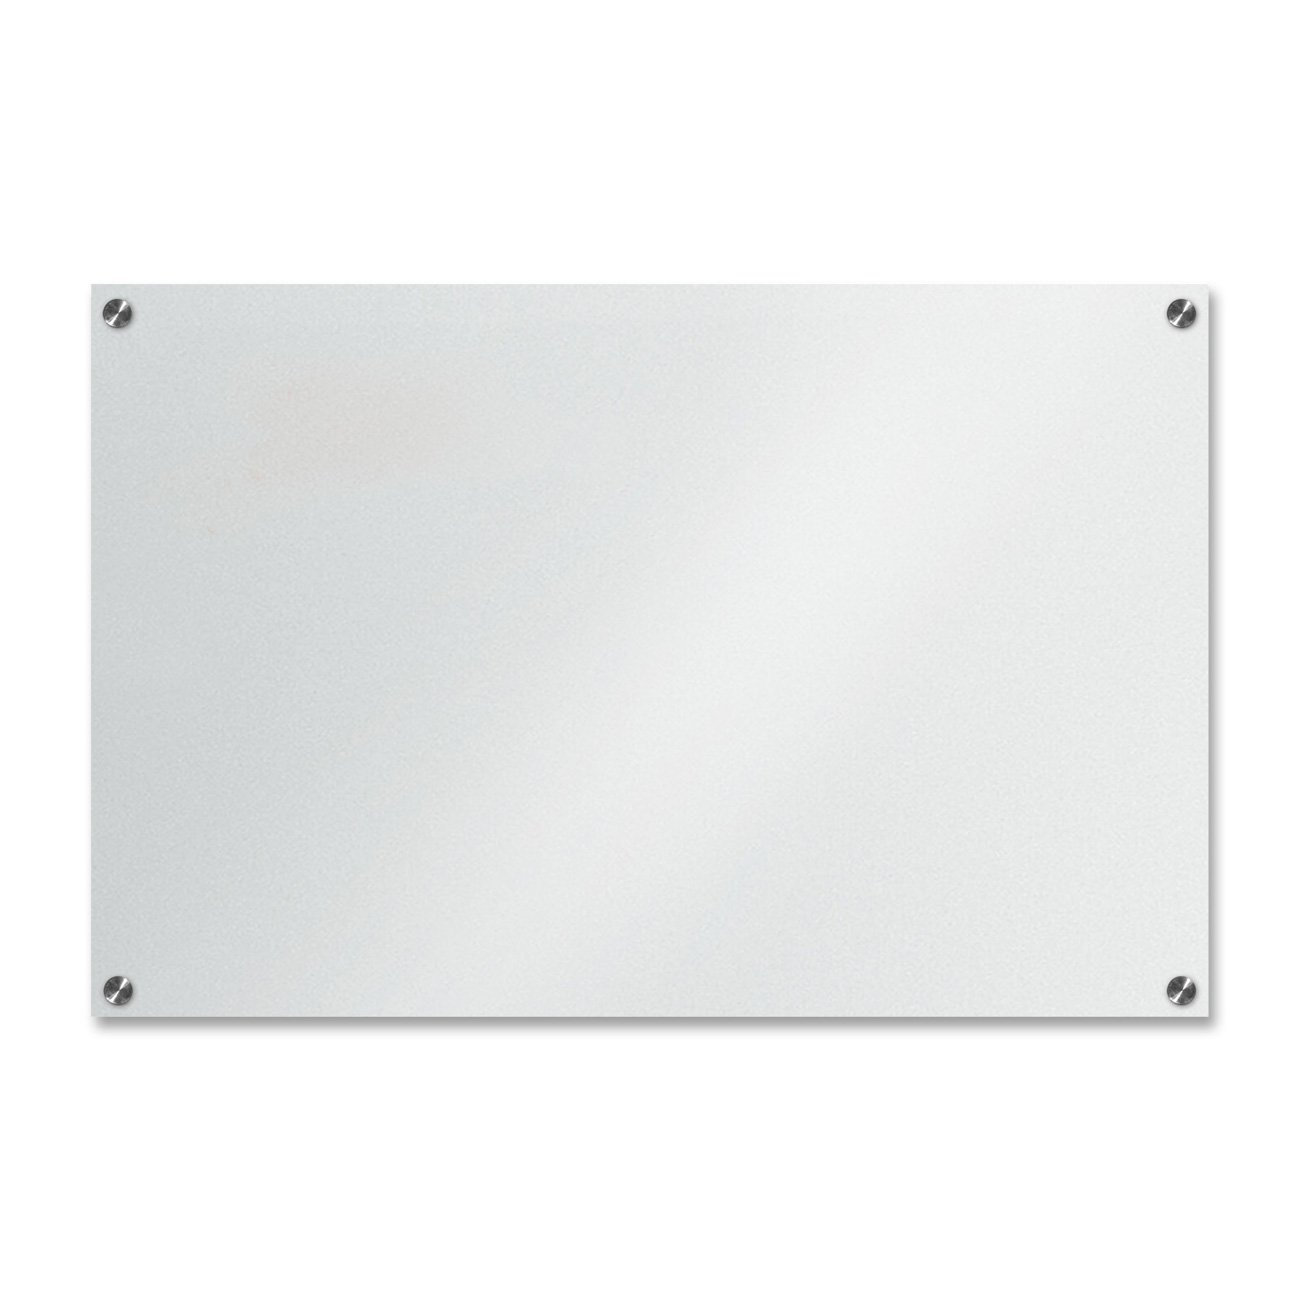 Clear Glass Panels On White Surface: White Or Black Glass Dry Erase Boards: Clean And Unique